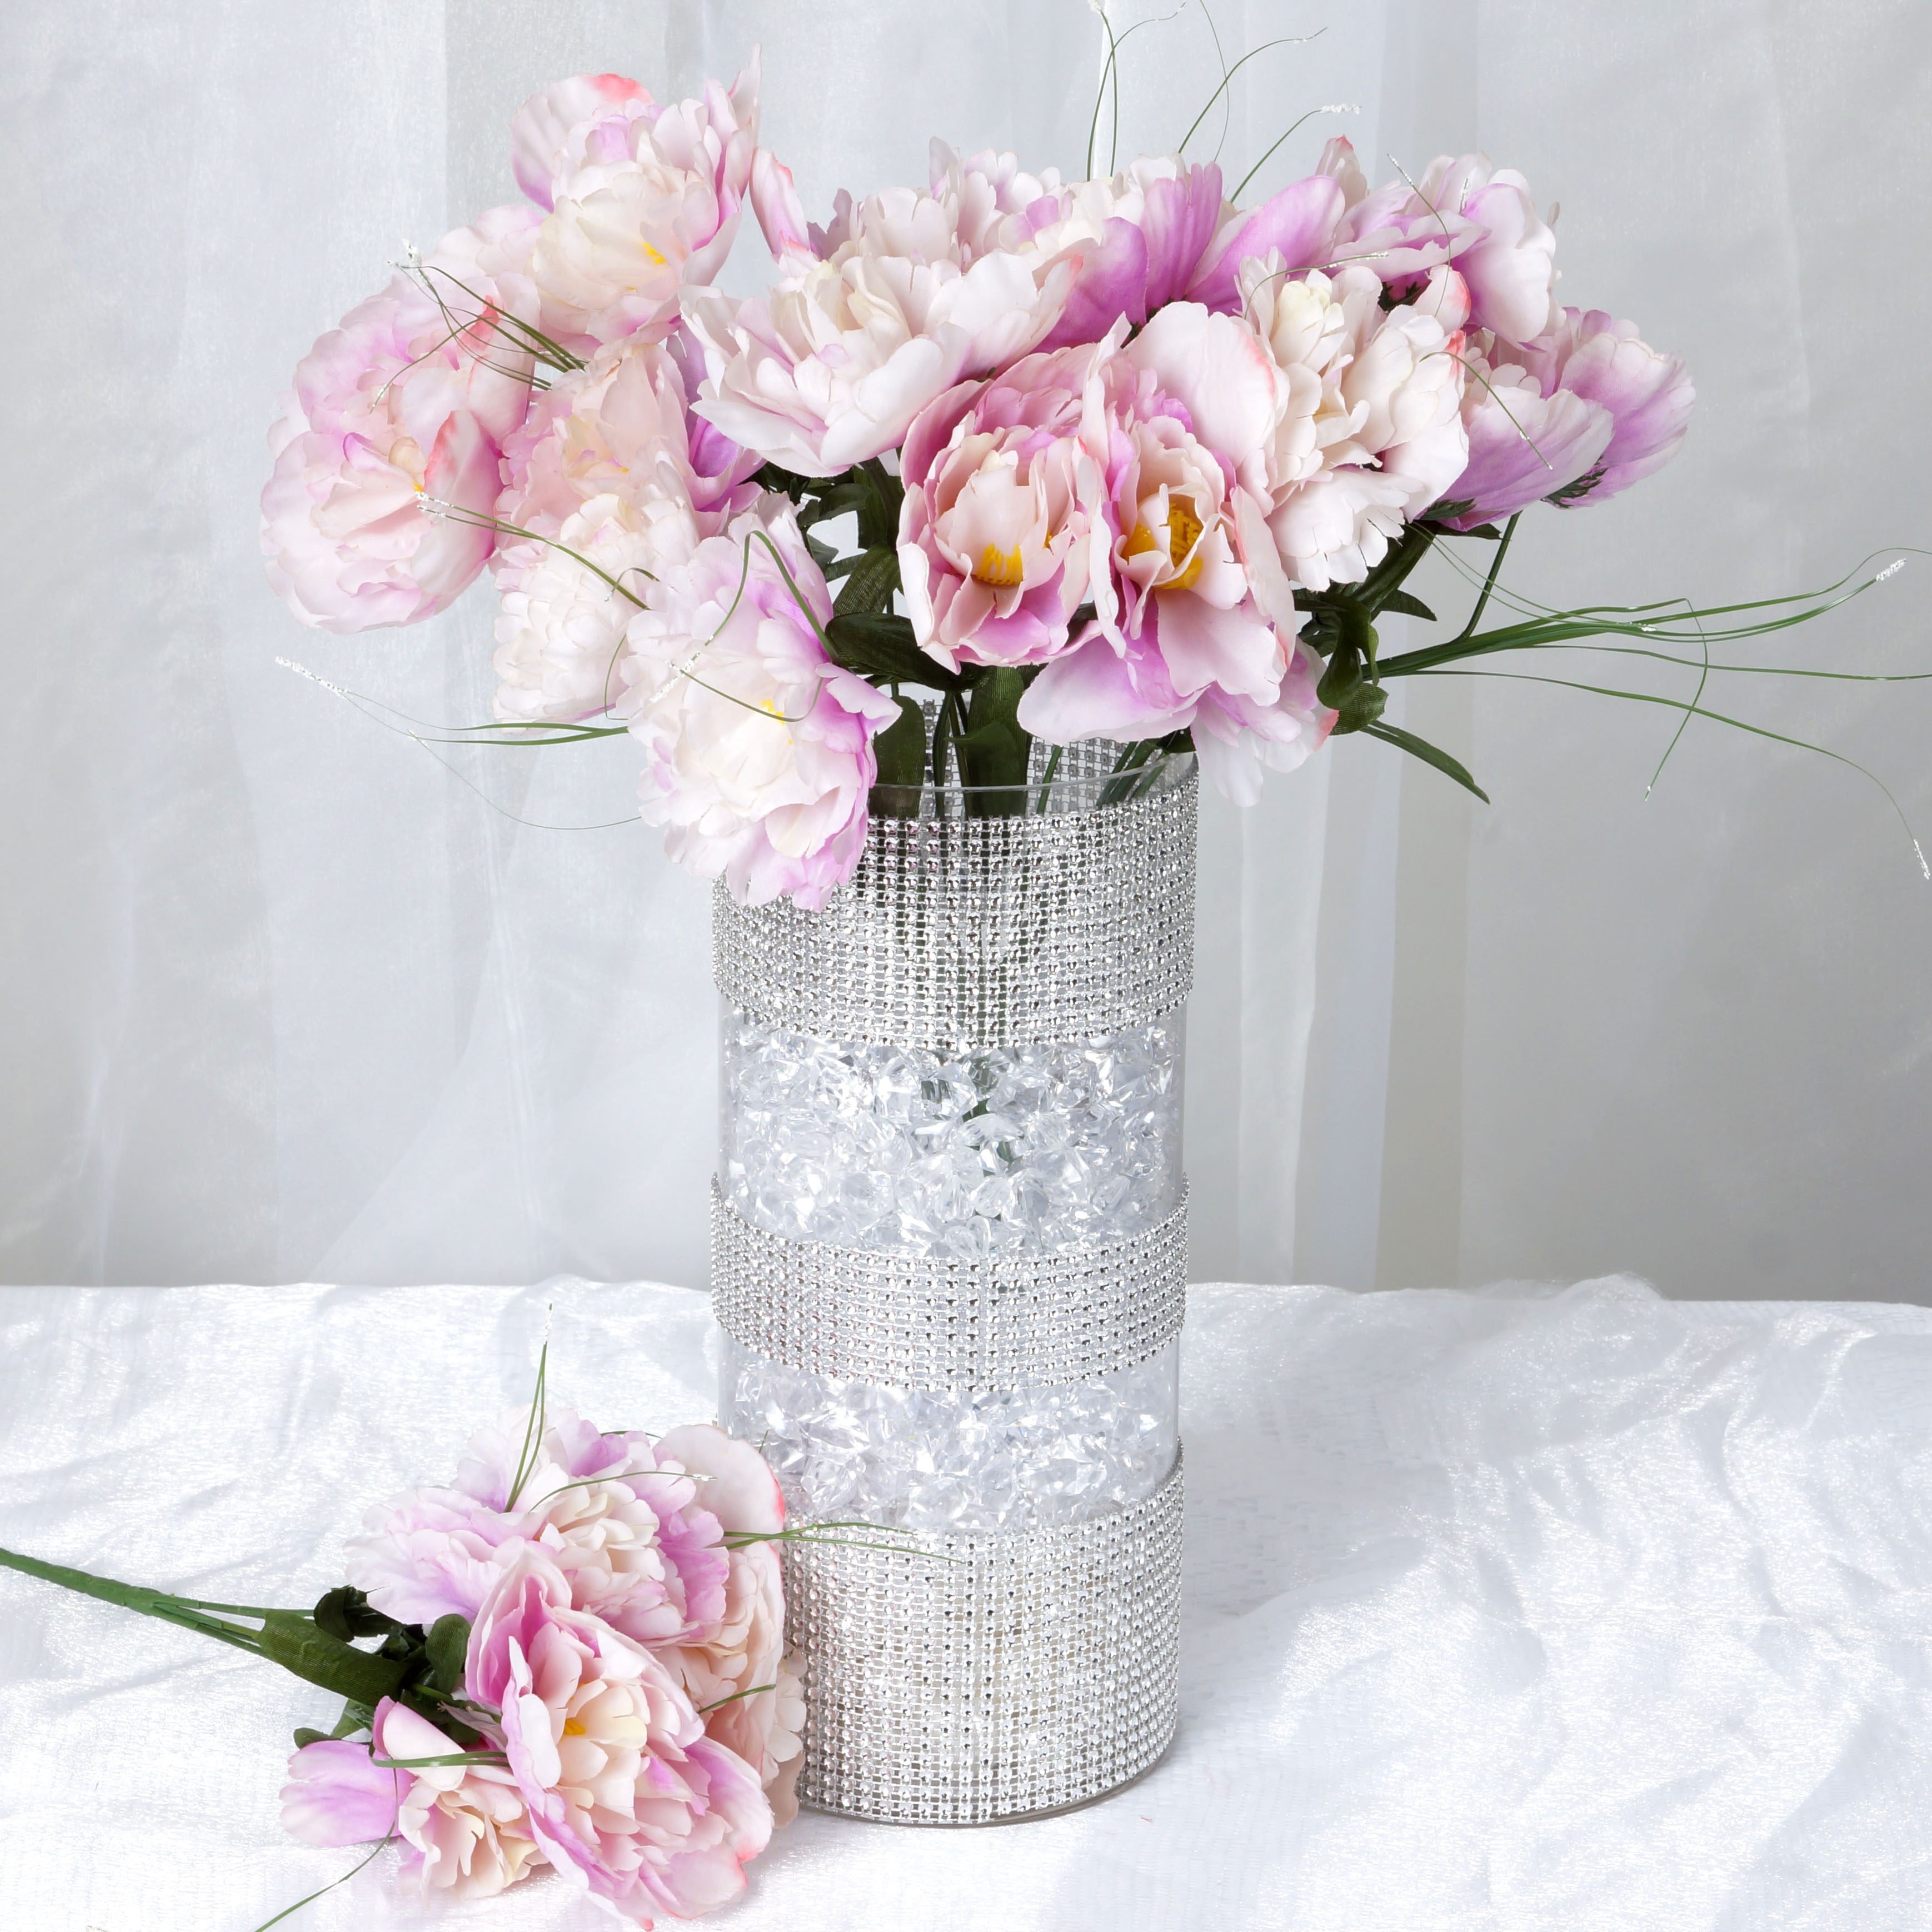 BalsaCircle 60 Silk Peony Flowers - DIY Peonies Home Wedding Party Artificial Bouquets Arrangements Centerpieces